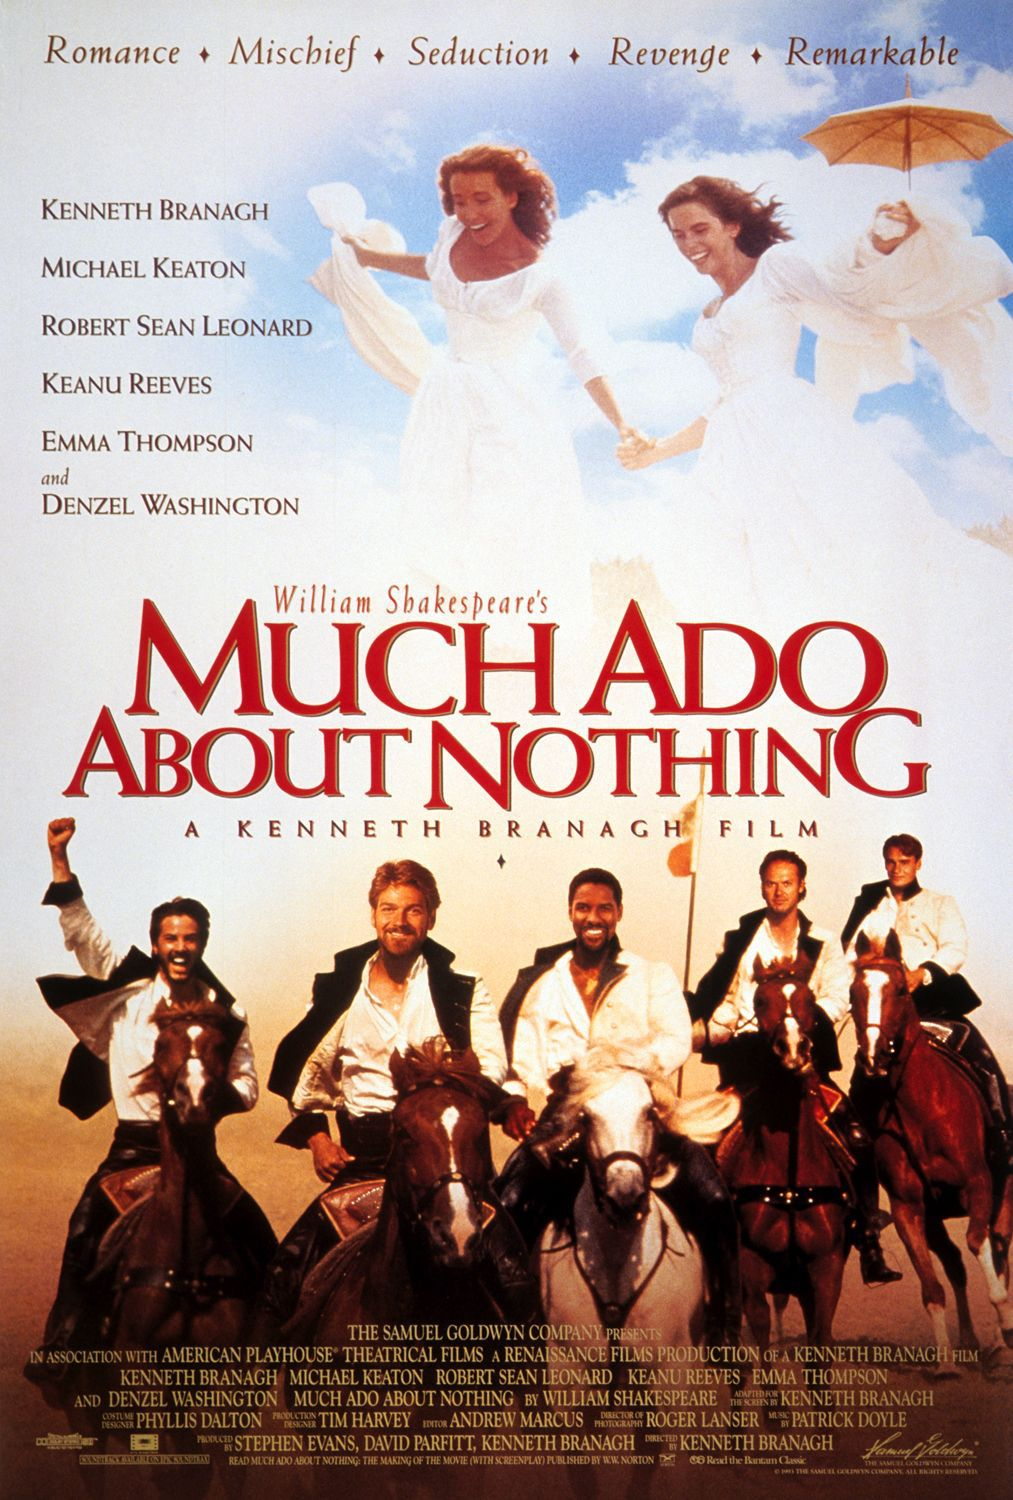 Much ado about nothing - Molto Rumore per Nulla (1993)